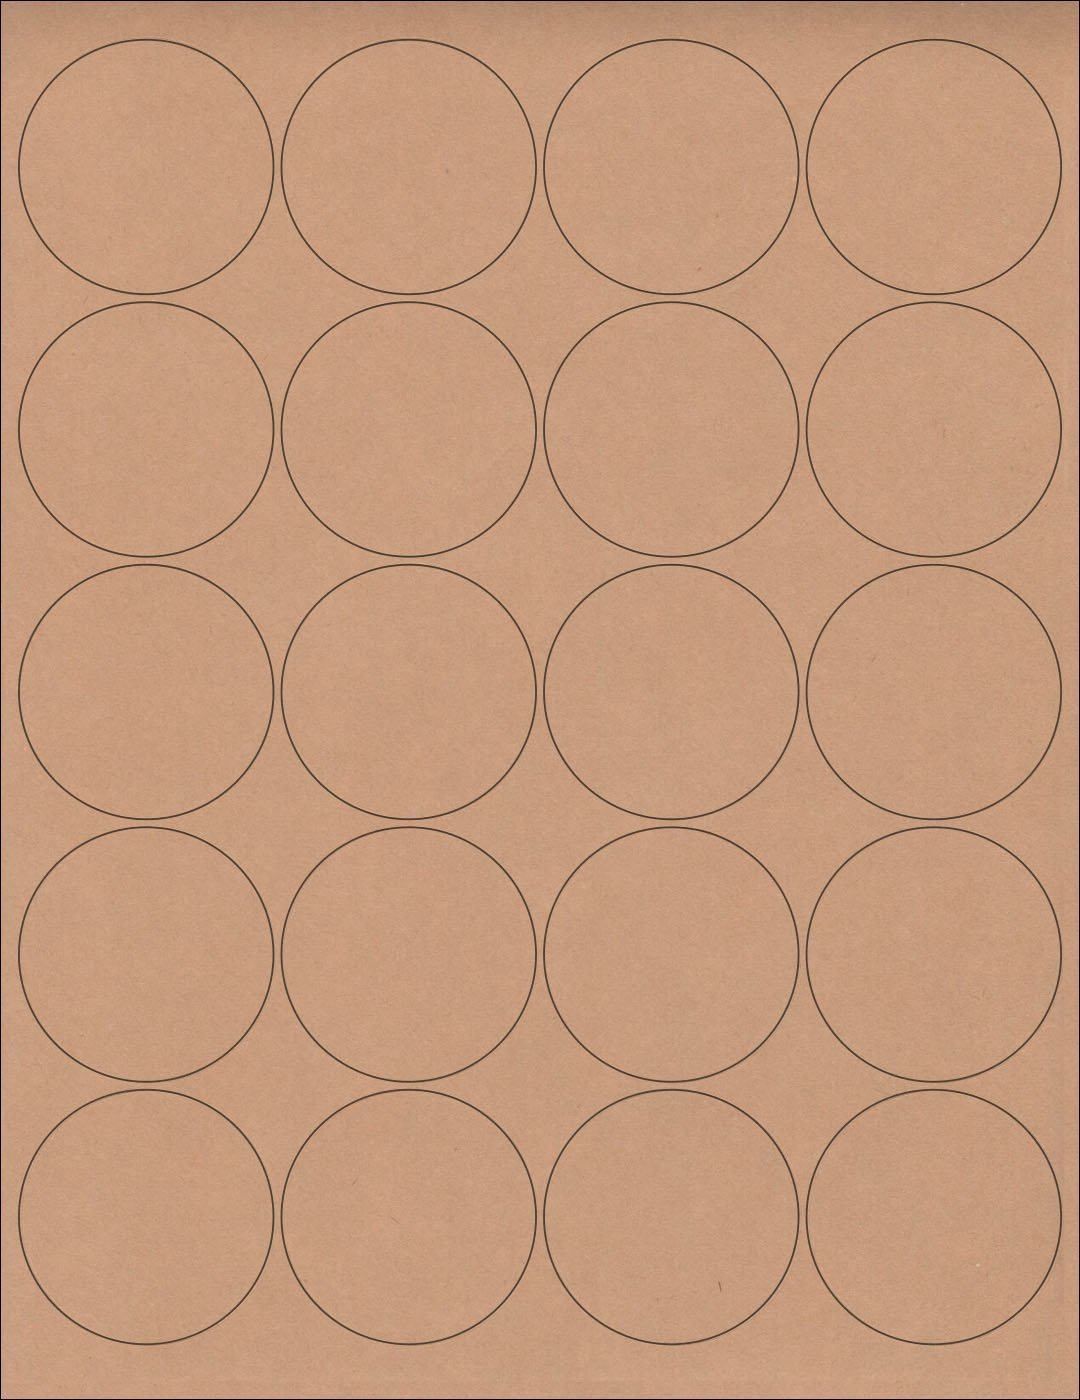 """(6 SHEETS) 120 2"""" Blank Round Circle Brown KRAFT Stickers for Inkjet & Laser Printers. Size: 8-1/2""""x11"""" Standard Sheets"""